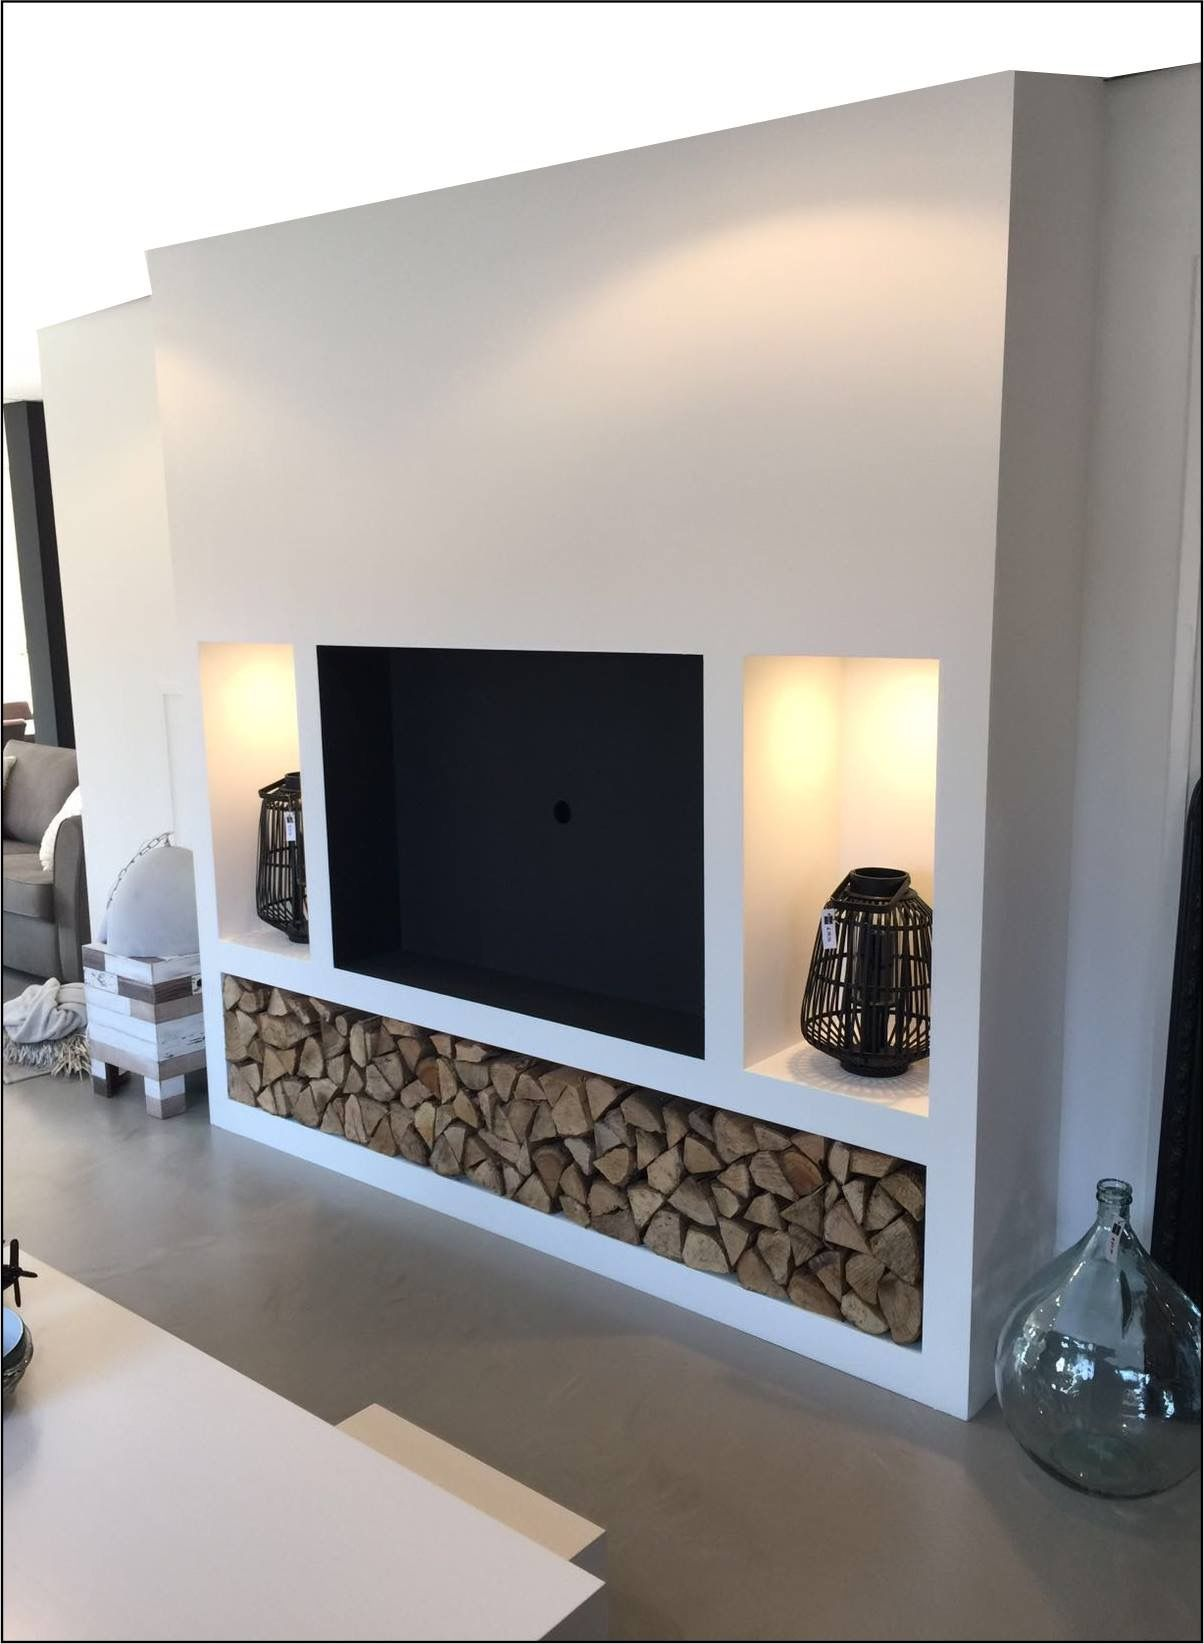 Tv An Wand Tv Wand Huis Idees In 2019 Home Living Room Tv Wall Decor